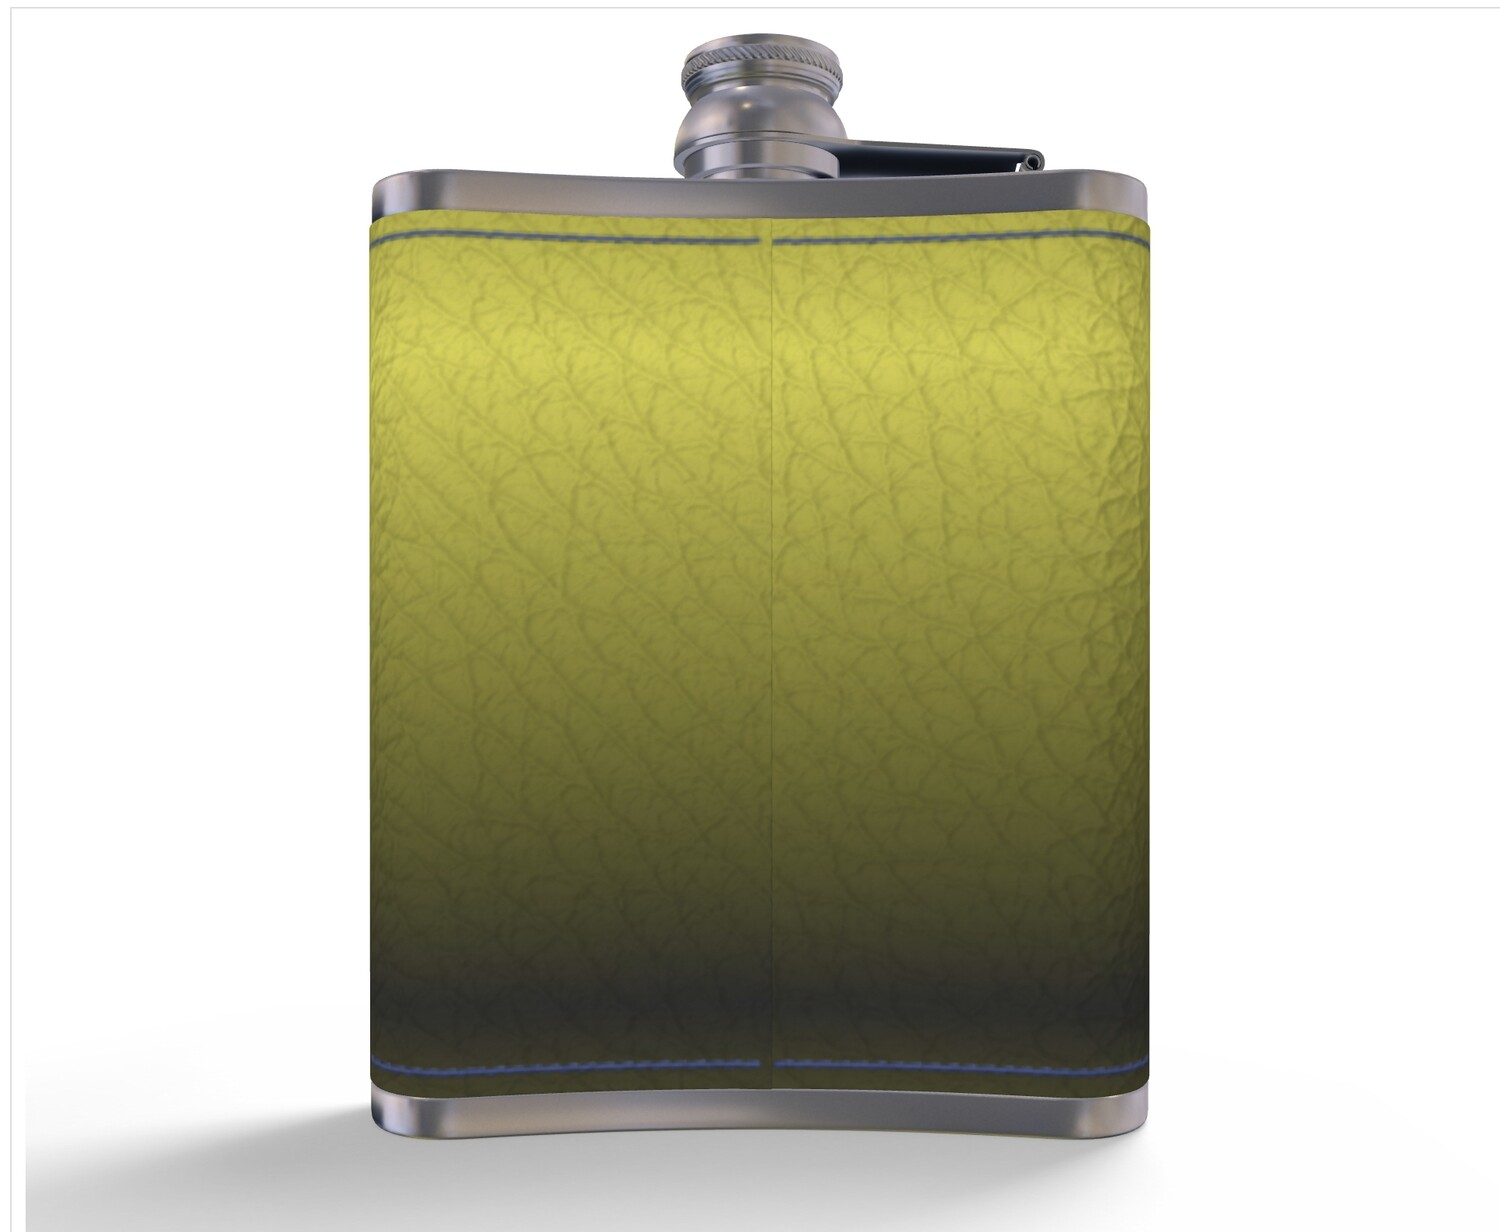 #NEW LEATHER HIP FLASK YELLOW AND GREY